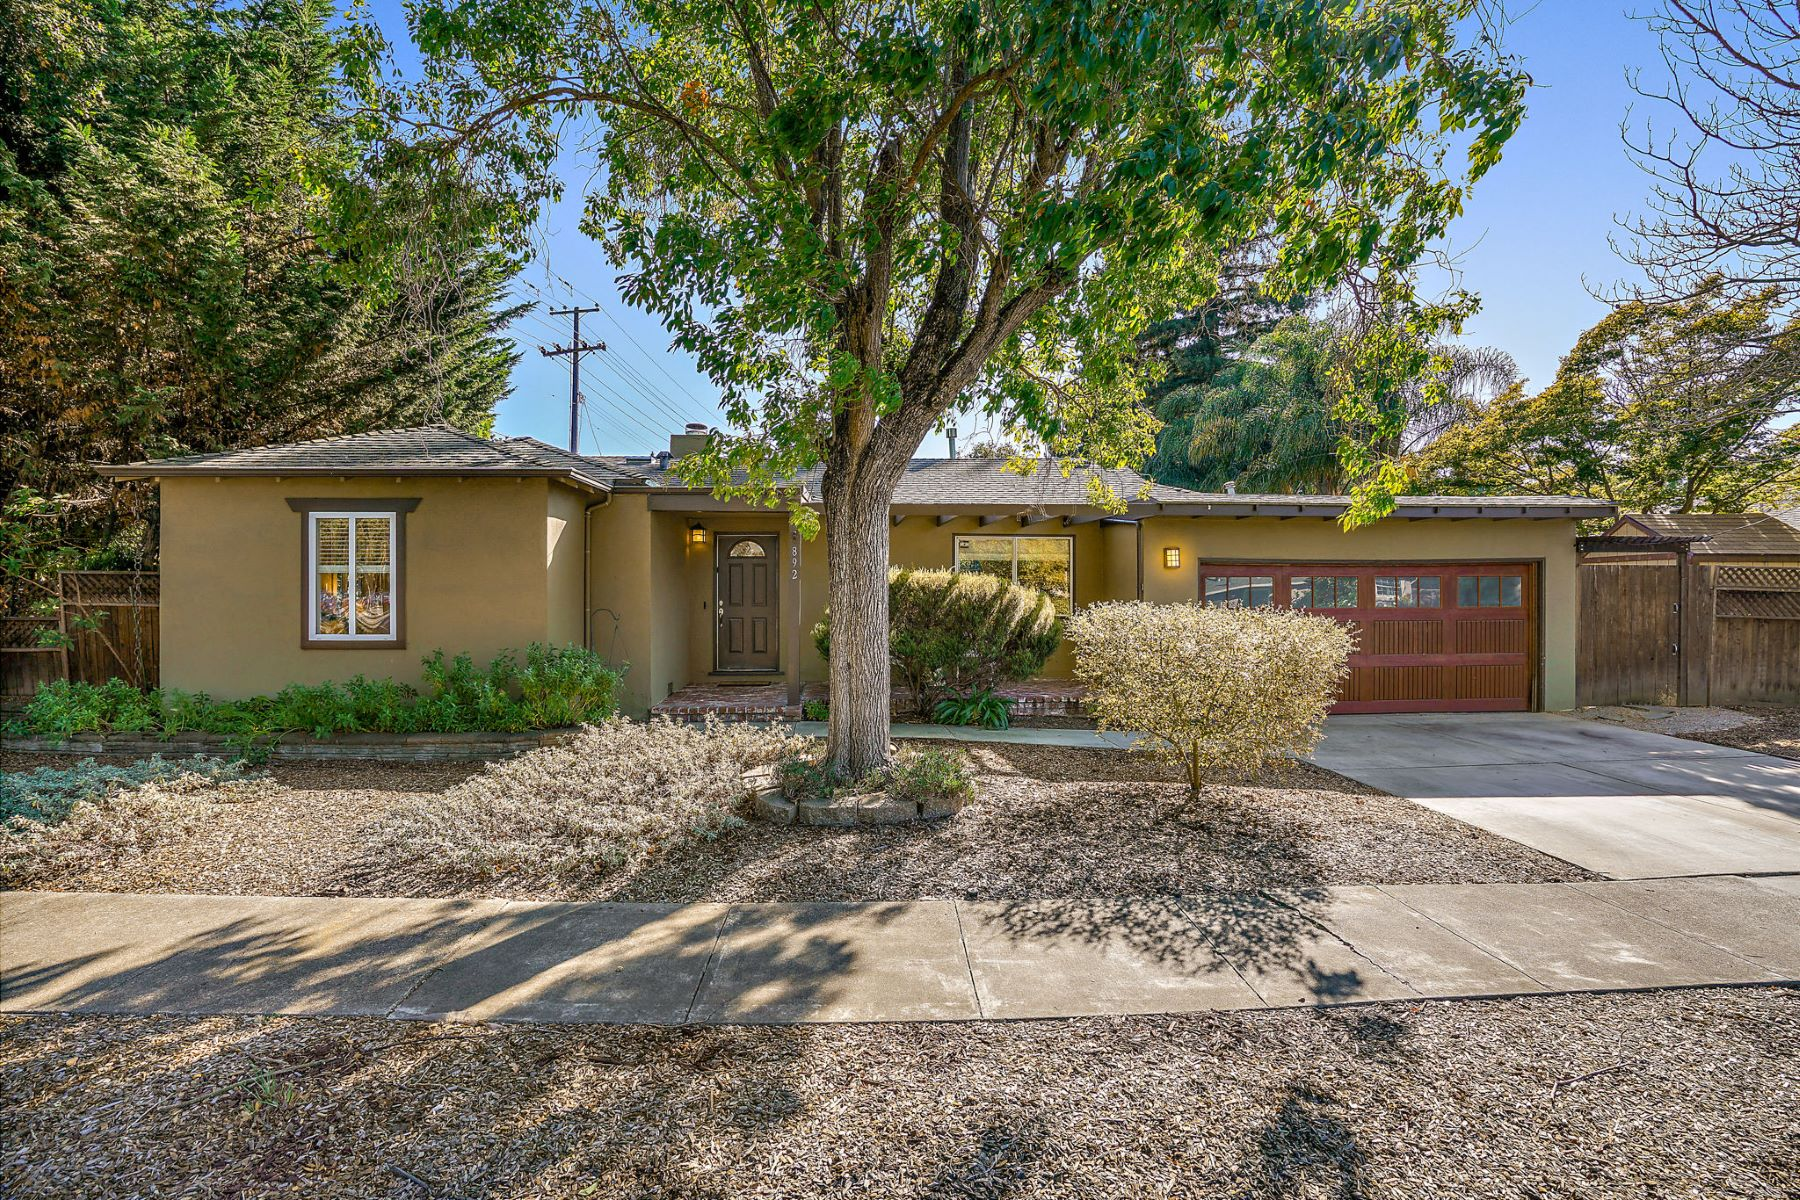 Single Family Homes for Sale at Wonderful Home in Excellent Neighborhood 892 15th Avenue Menlo Park, California 94025 United States